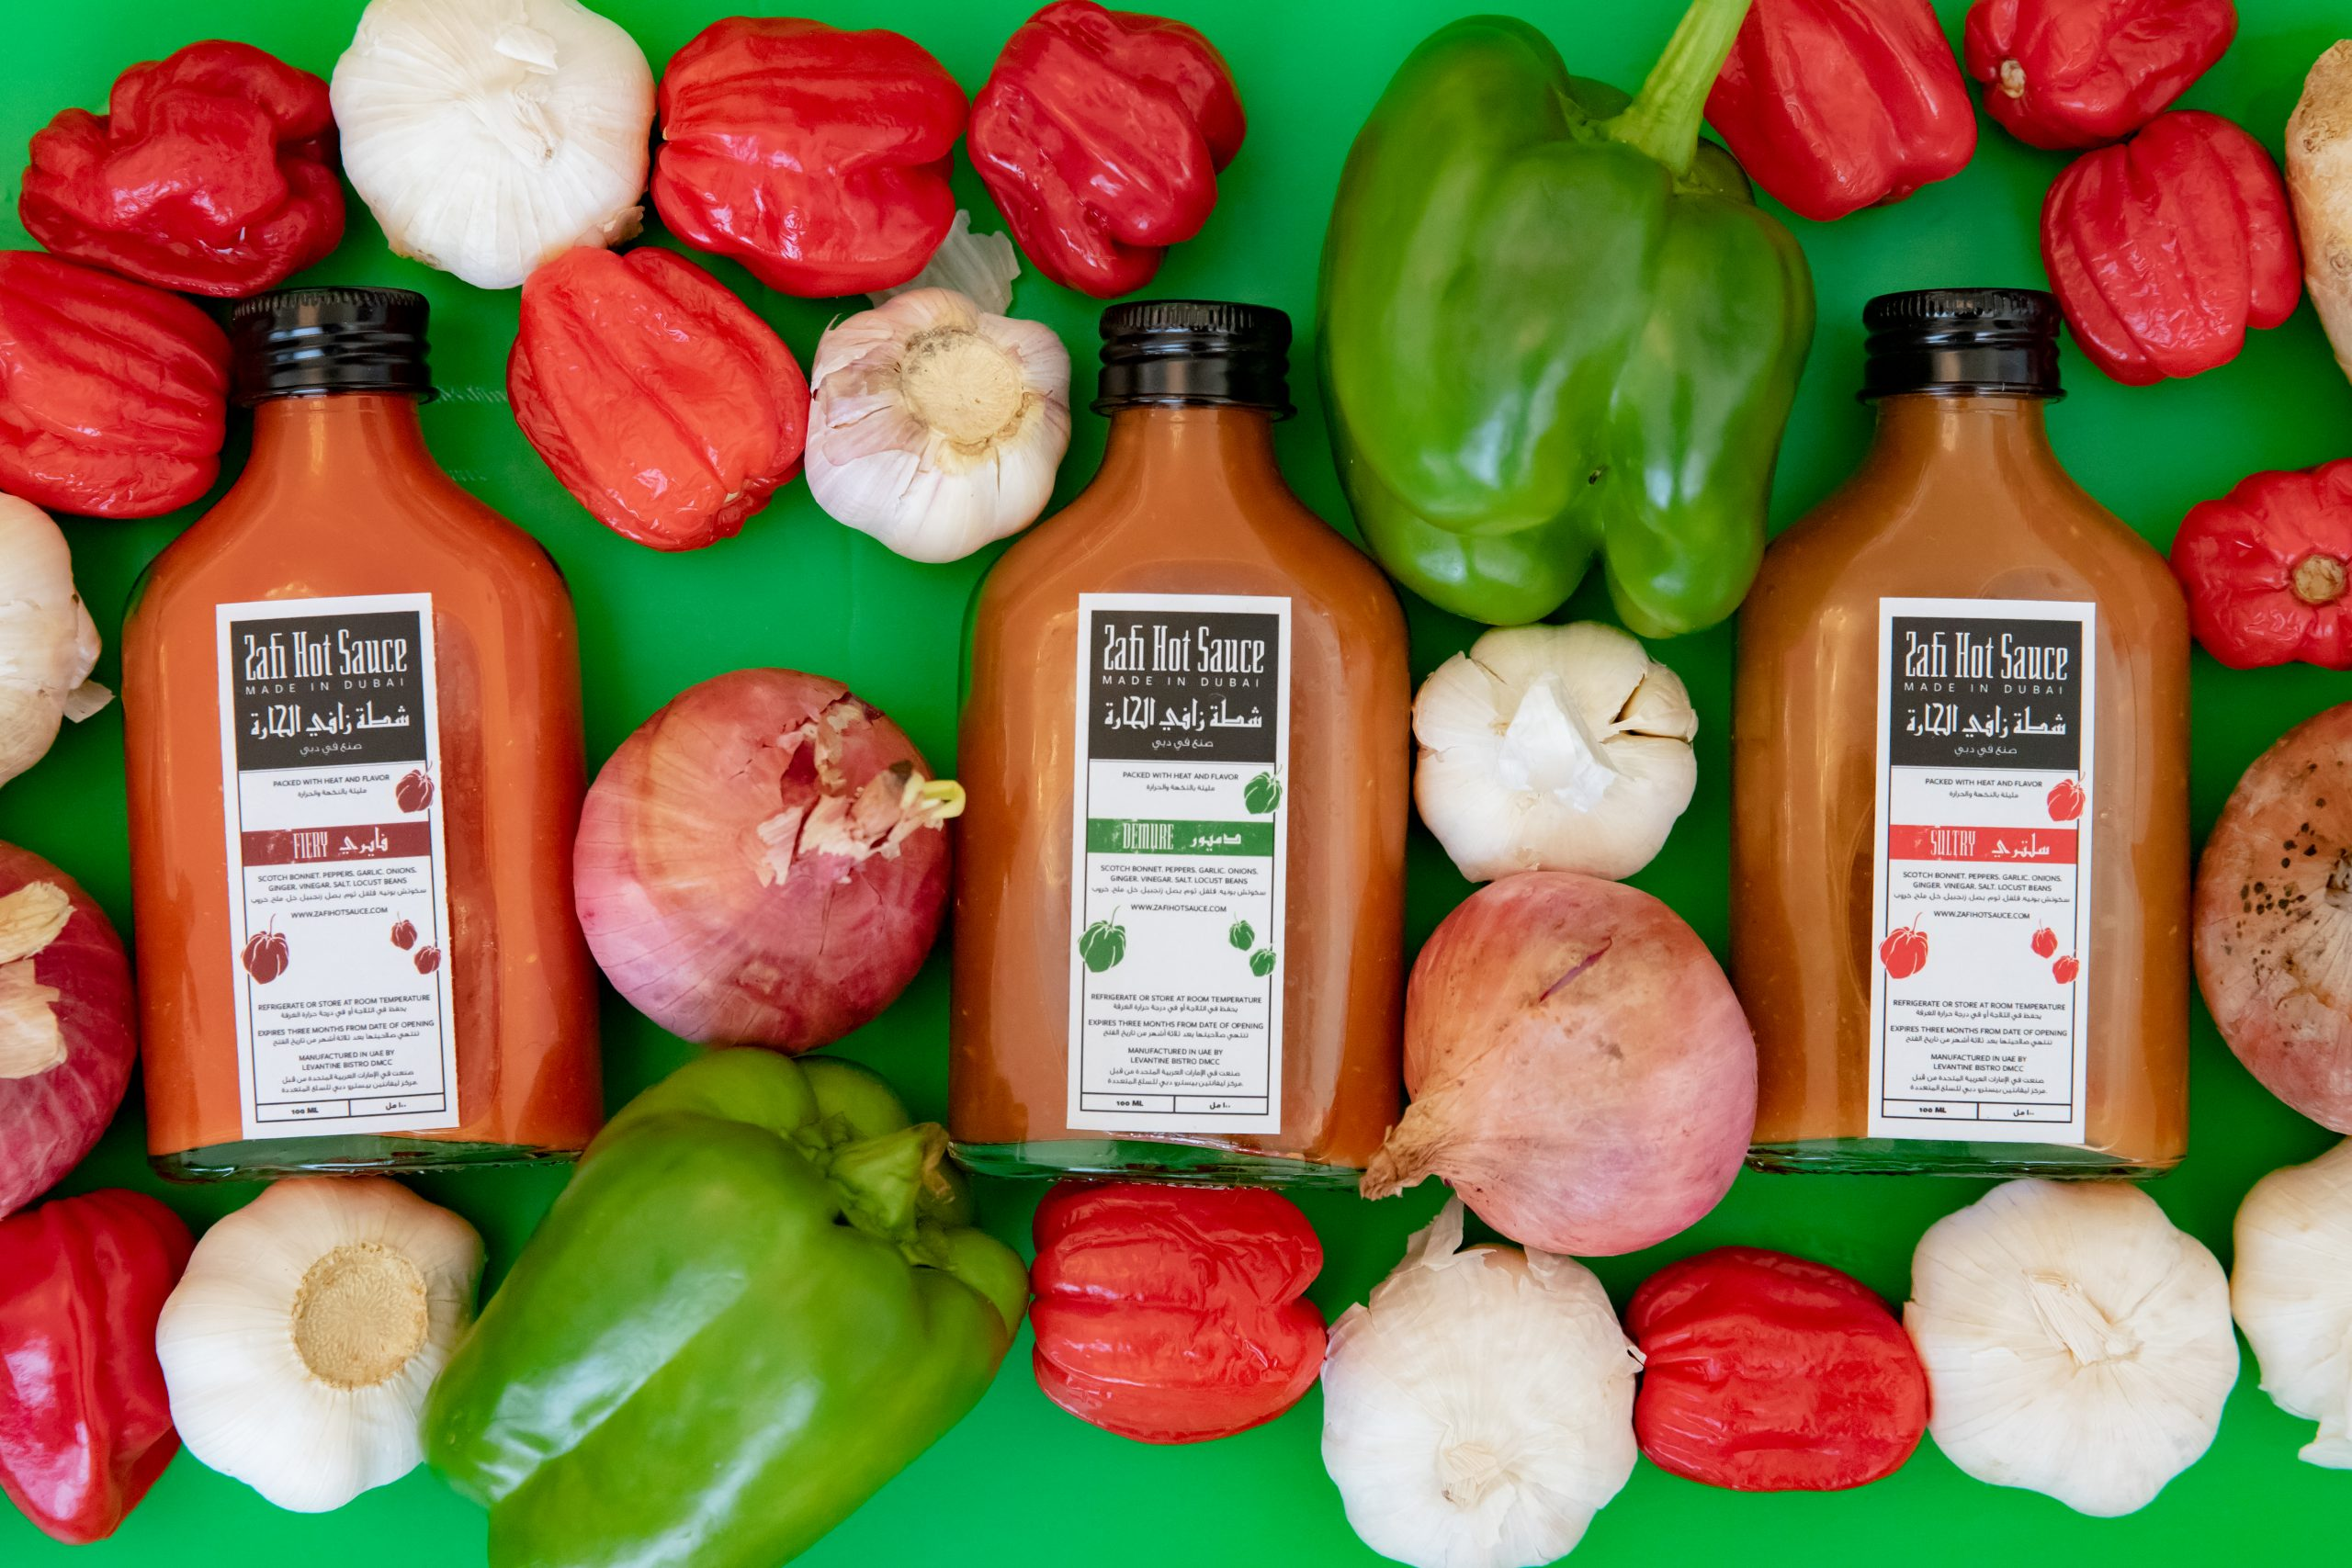 Zafi Hot Sauce: A homegrown artisanal hot sauce